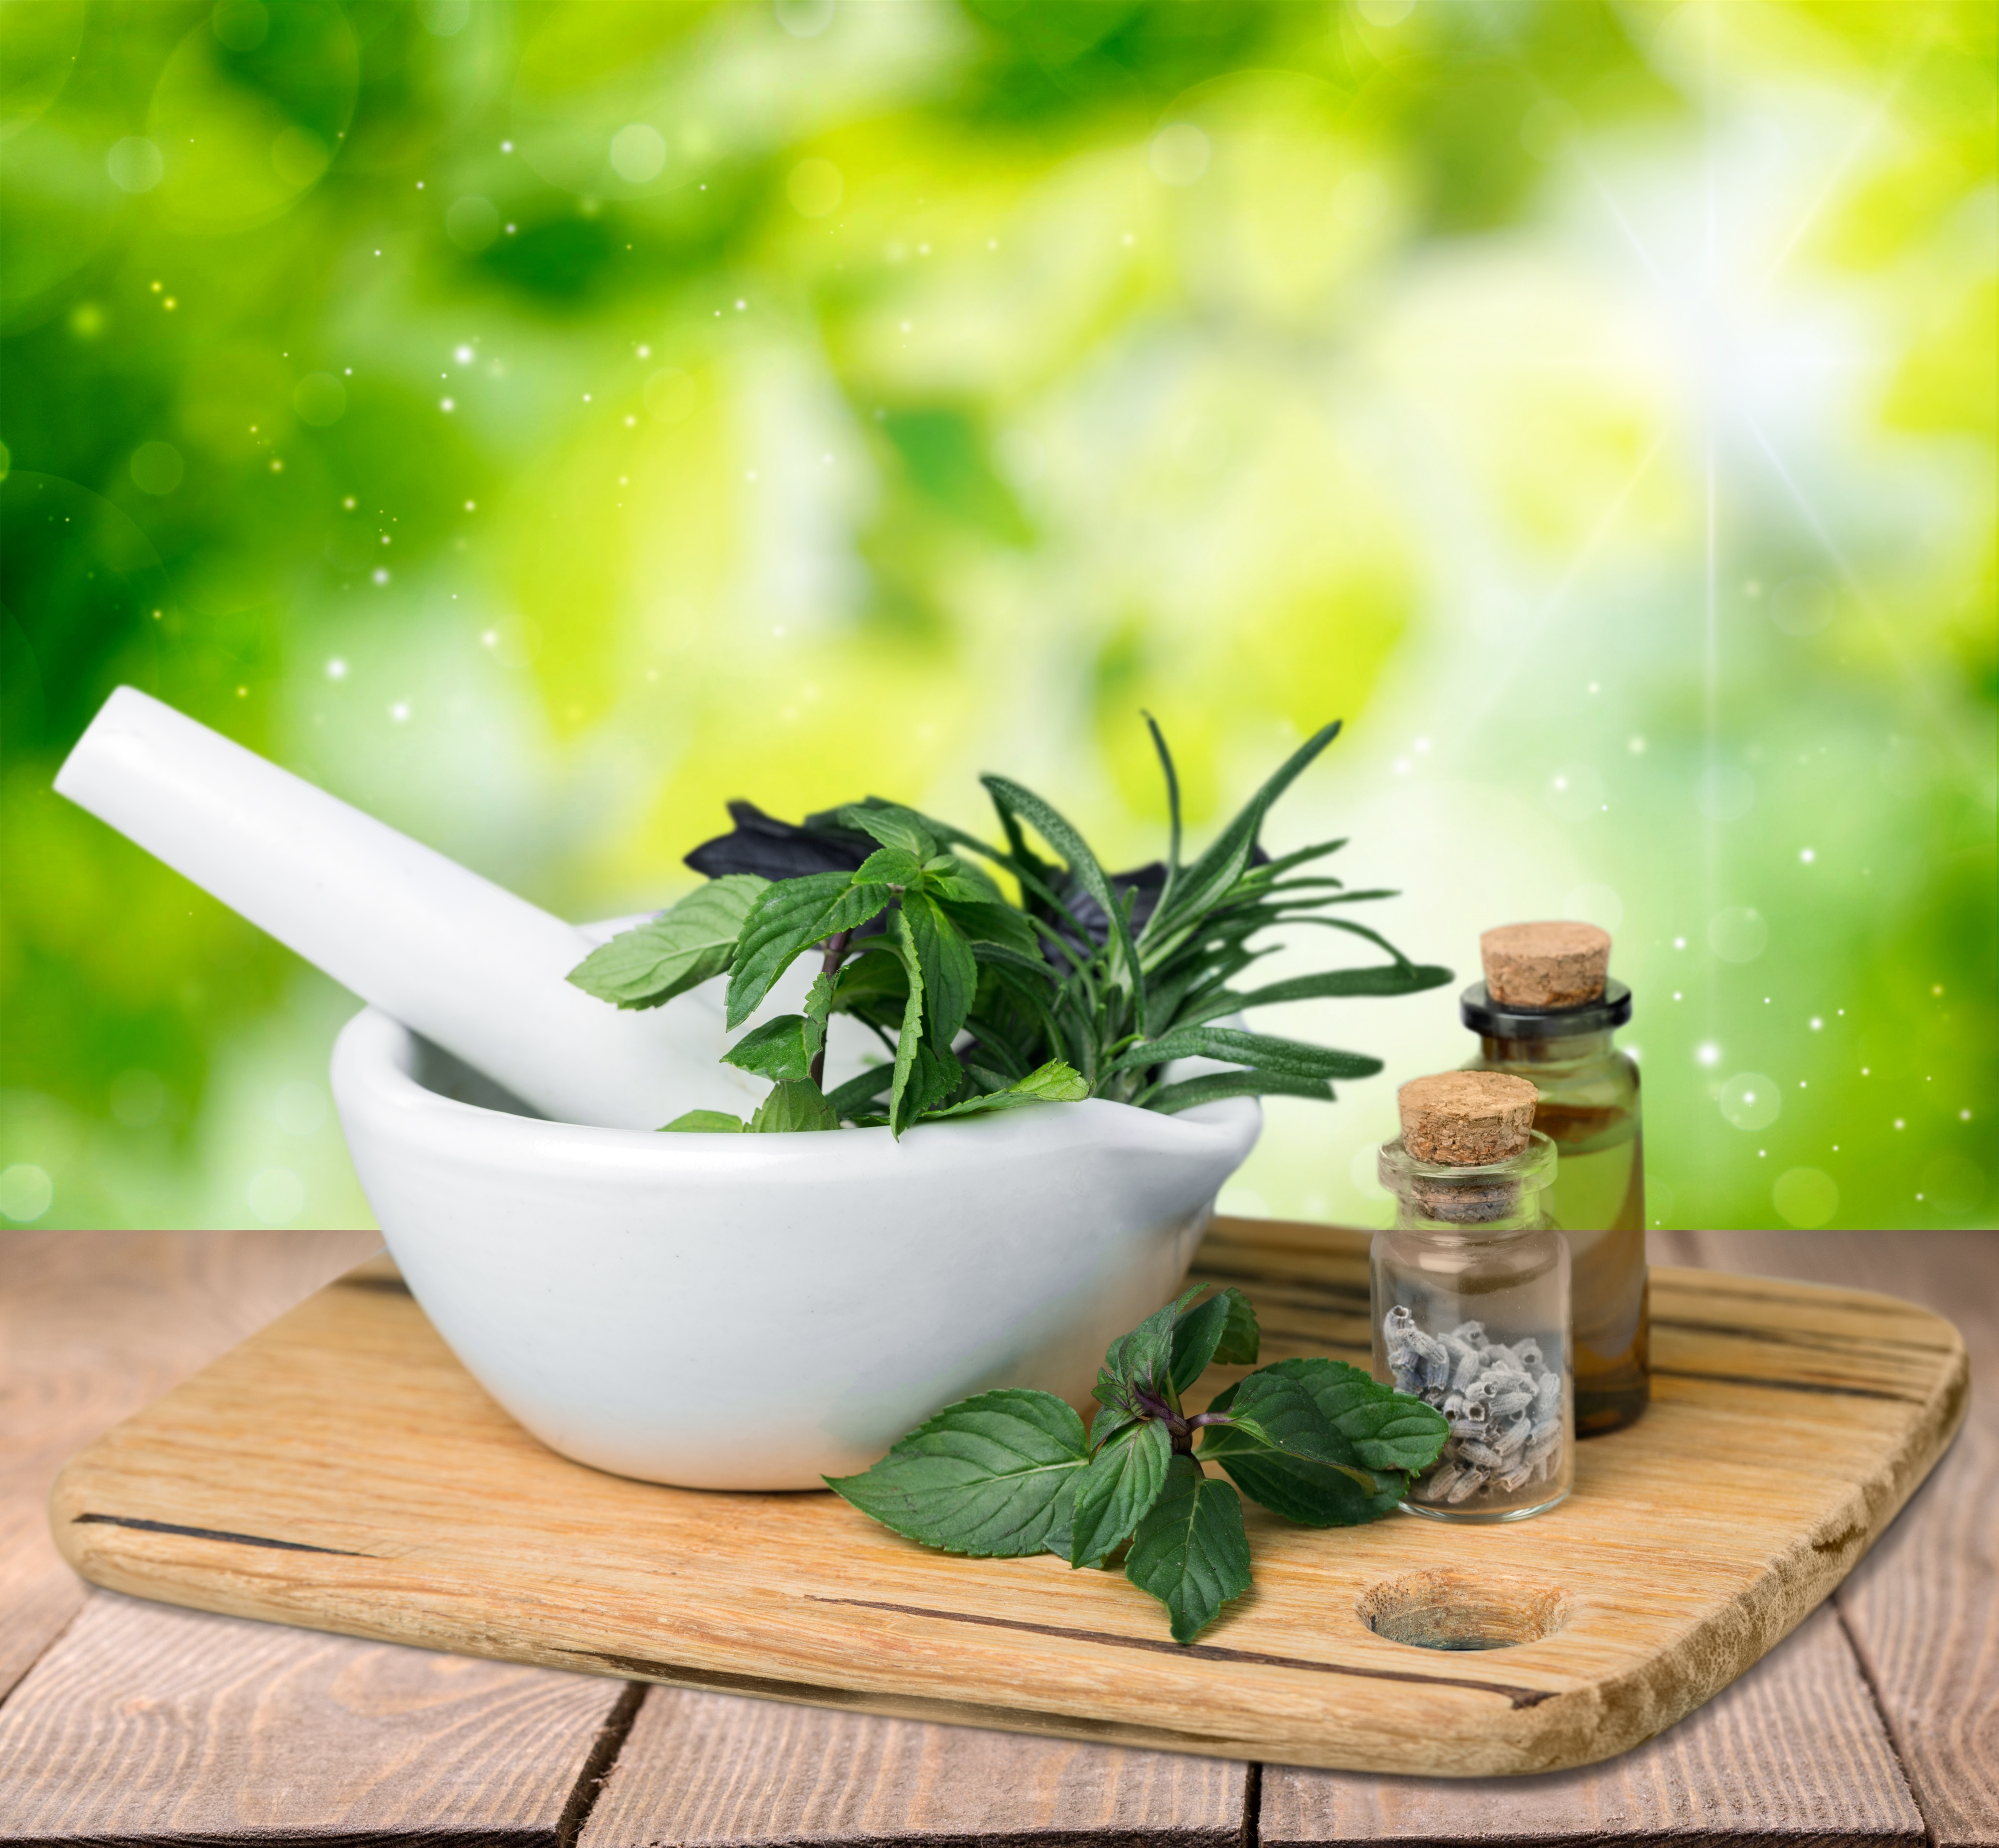 5 Healing Herbs and Their Benefits